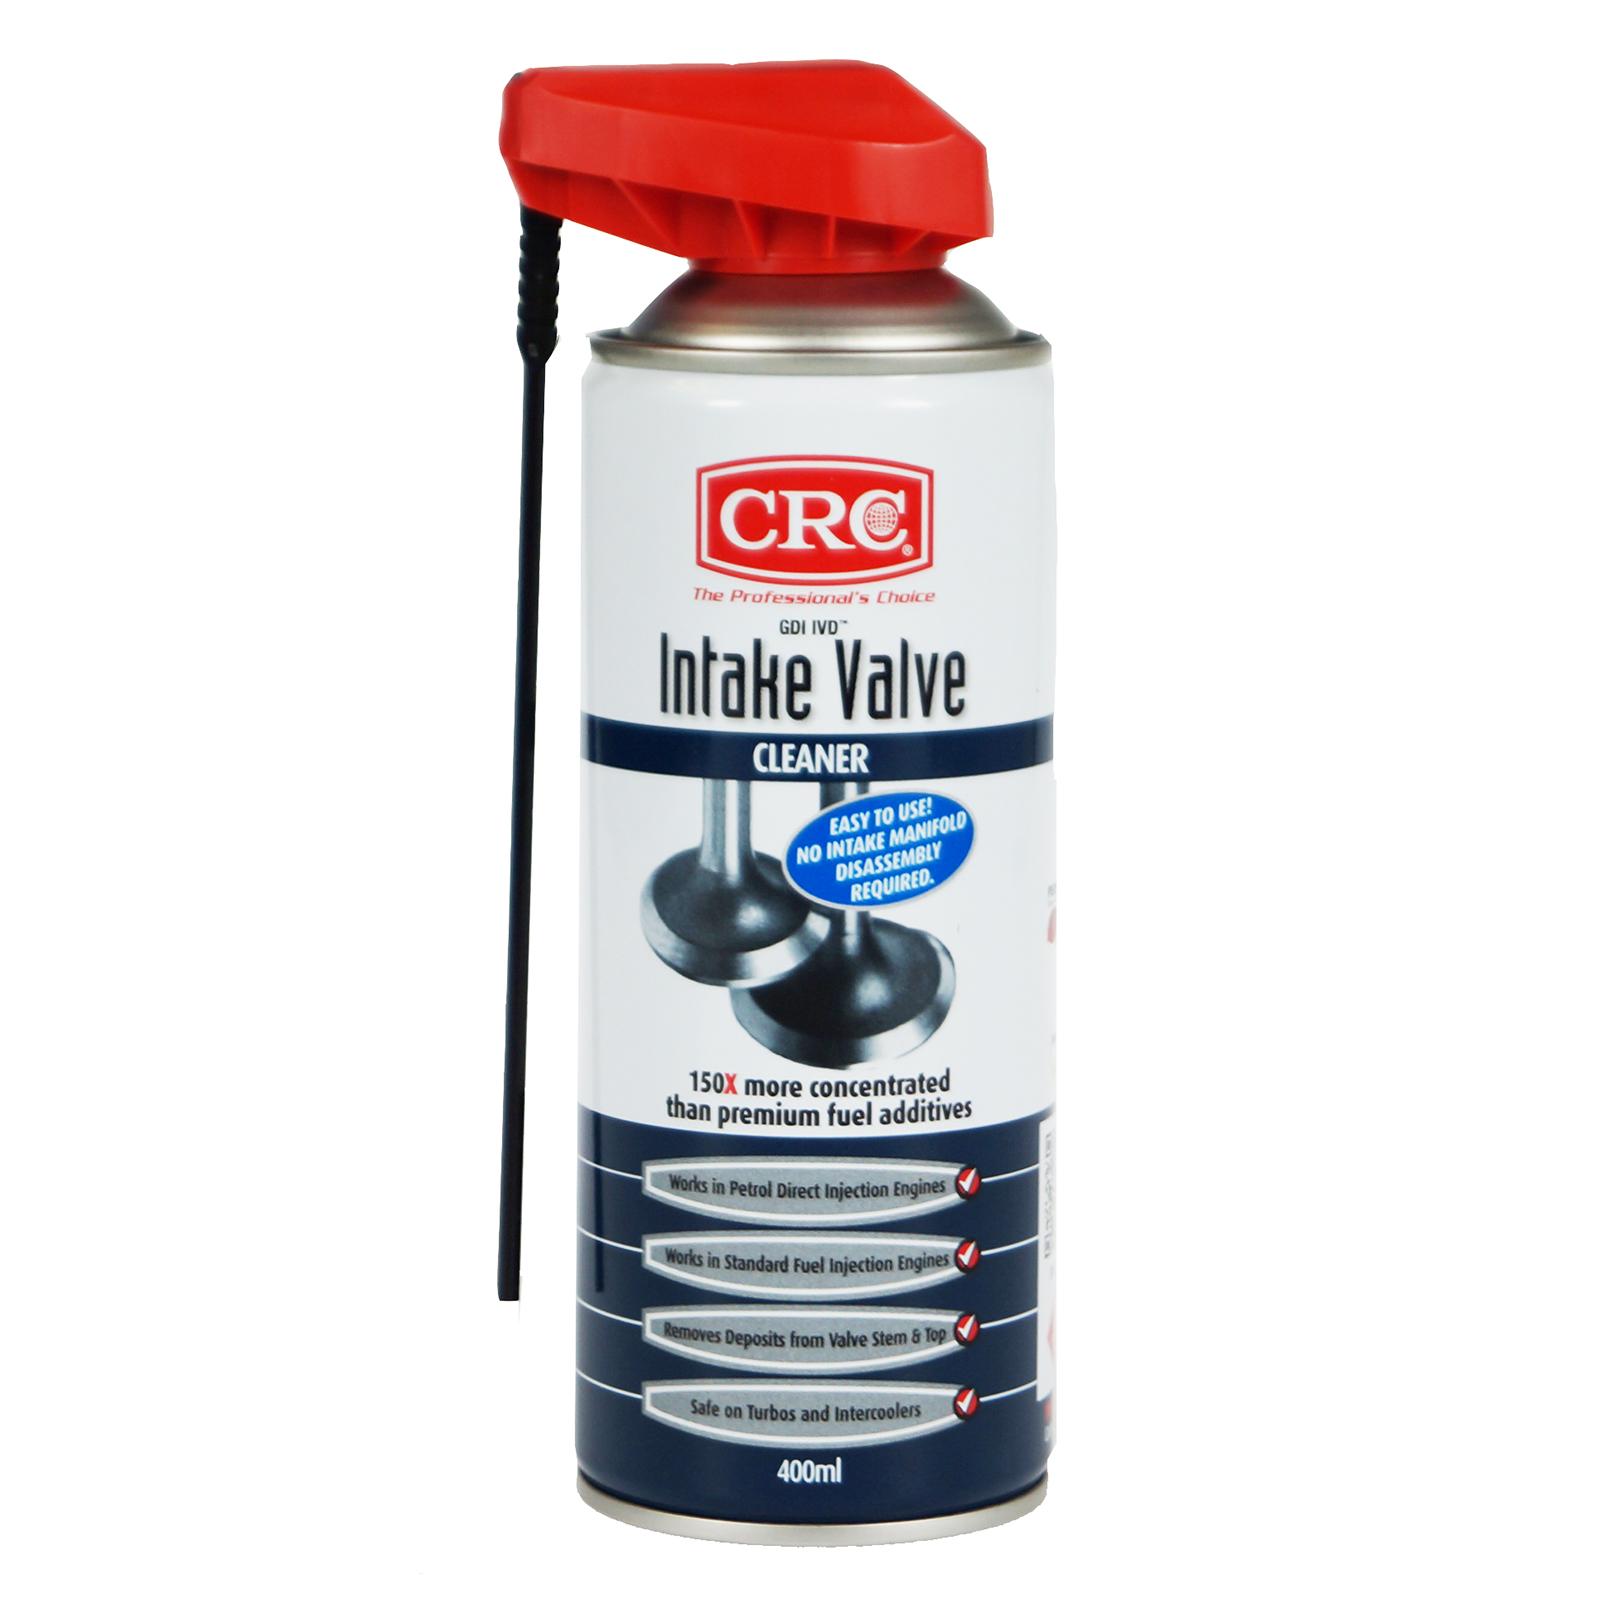 Car Dry Fuel System Cleaner Crc Gdi Intake Valve Cleaner